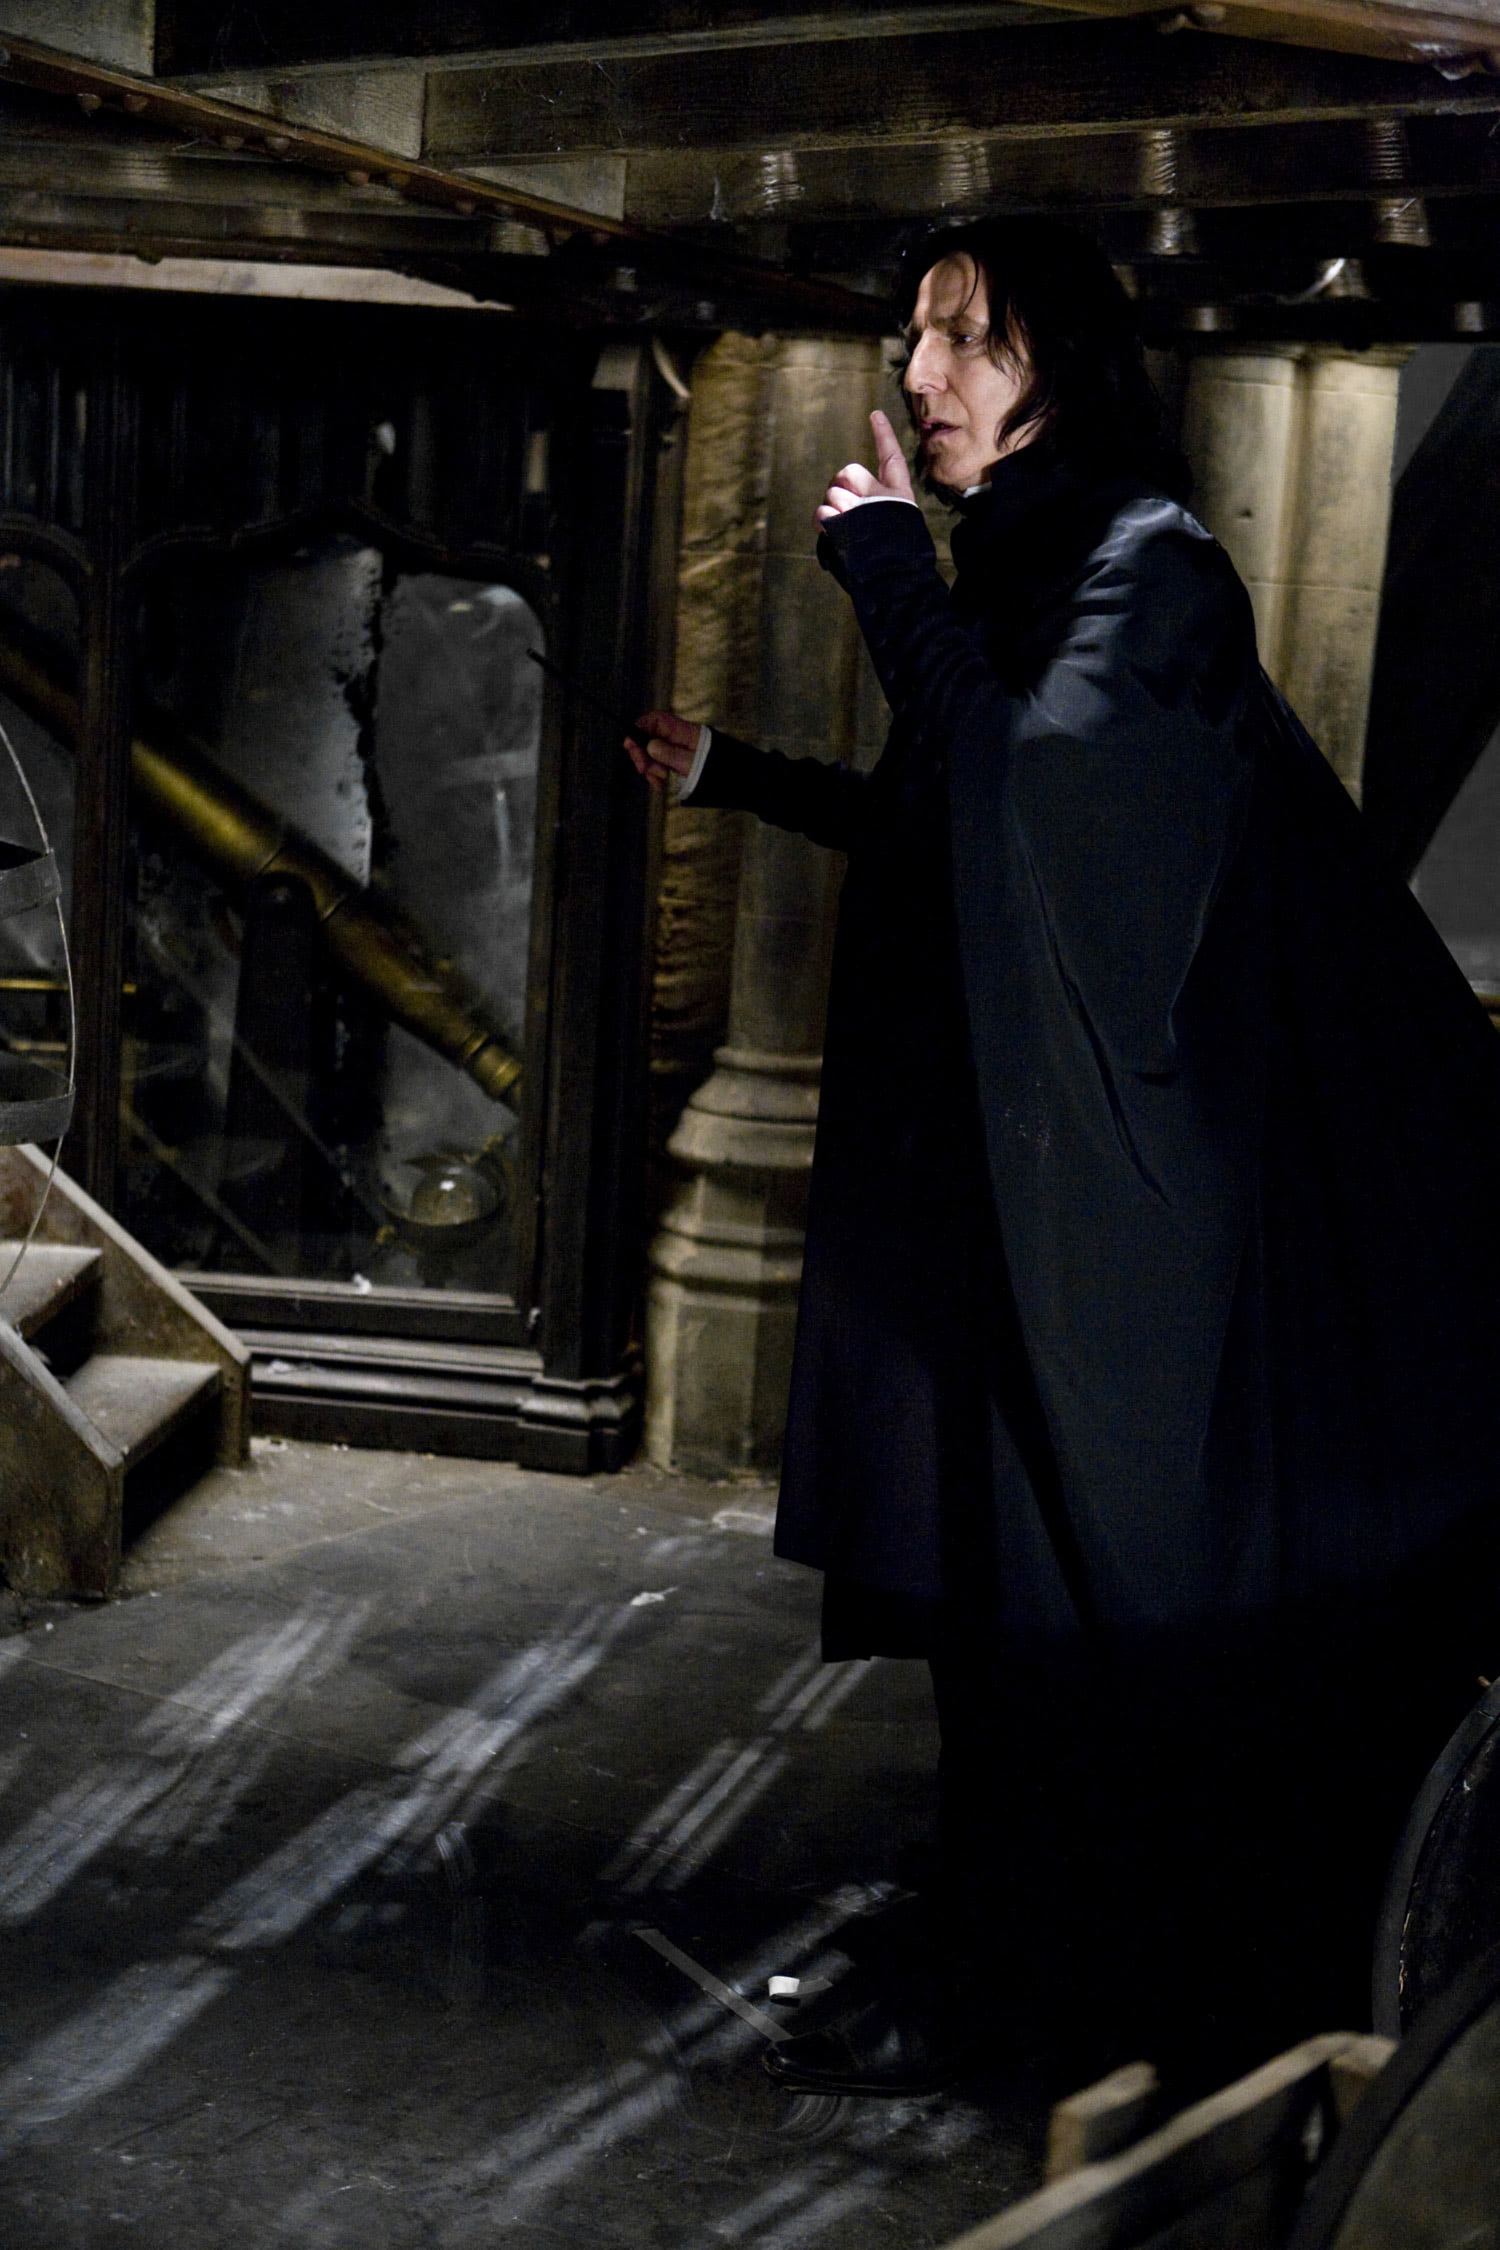 Snape arrives at the Astronomy Tower